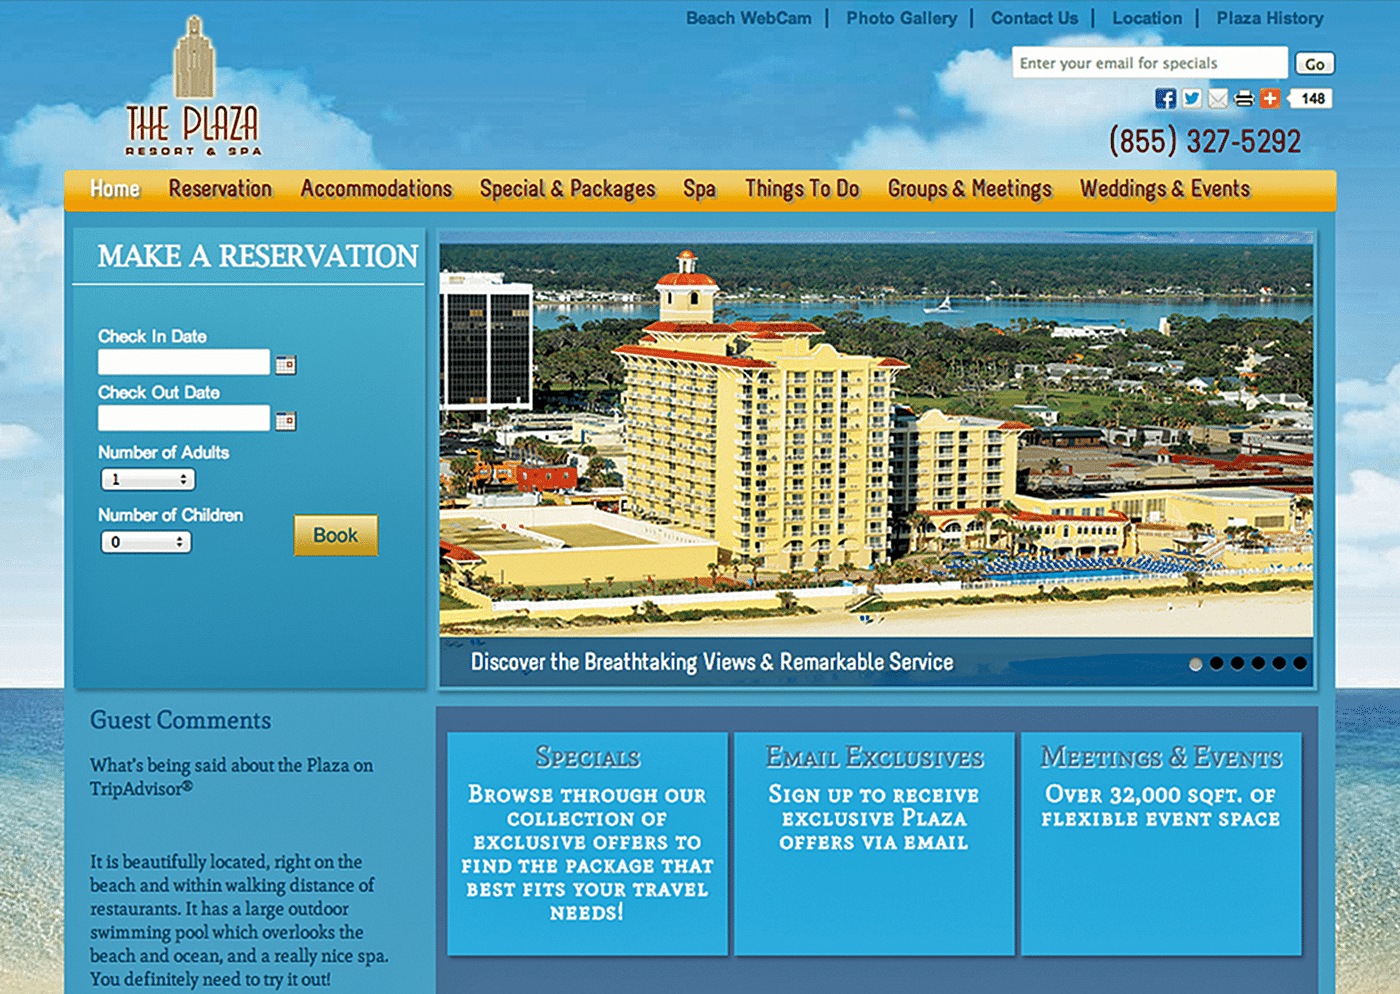 Hotel Website Design Agency Creative | Plaza